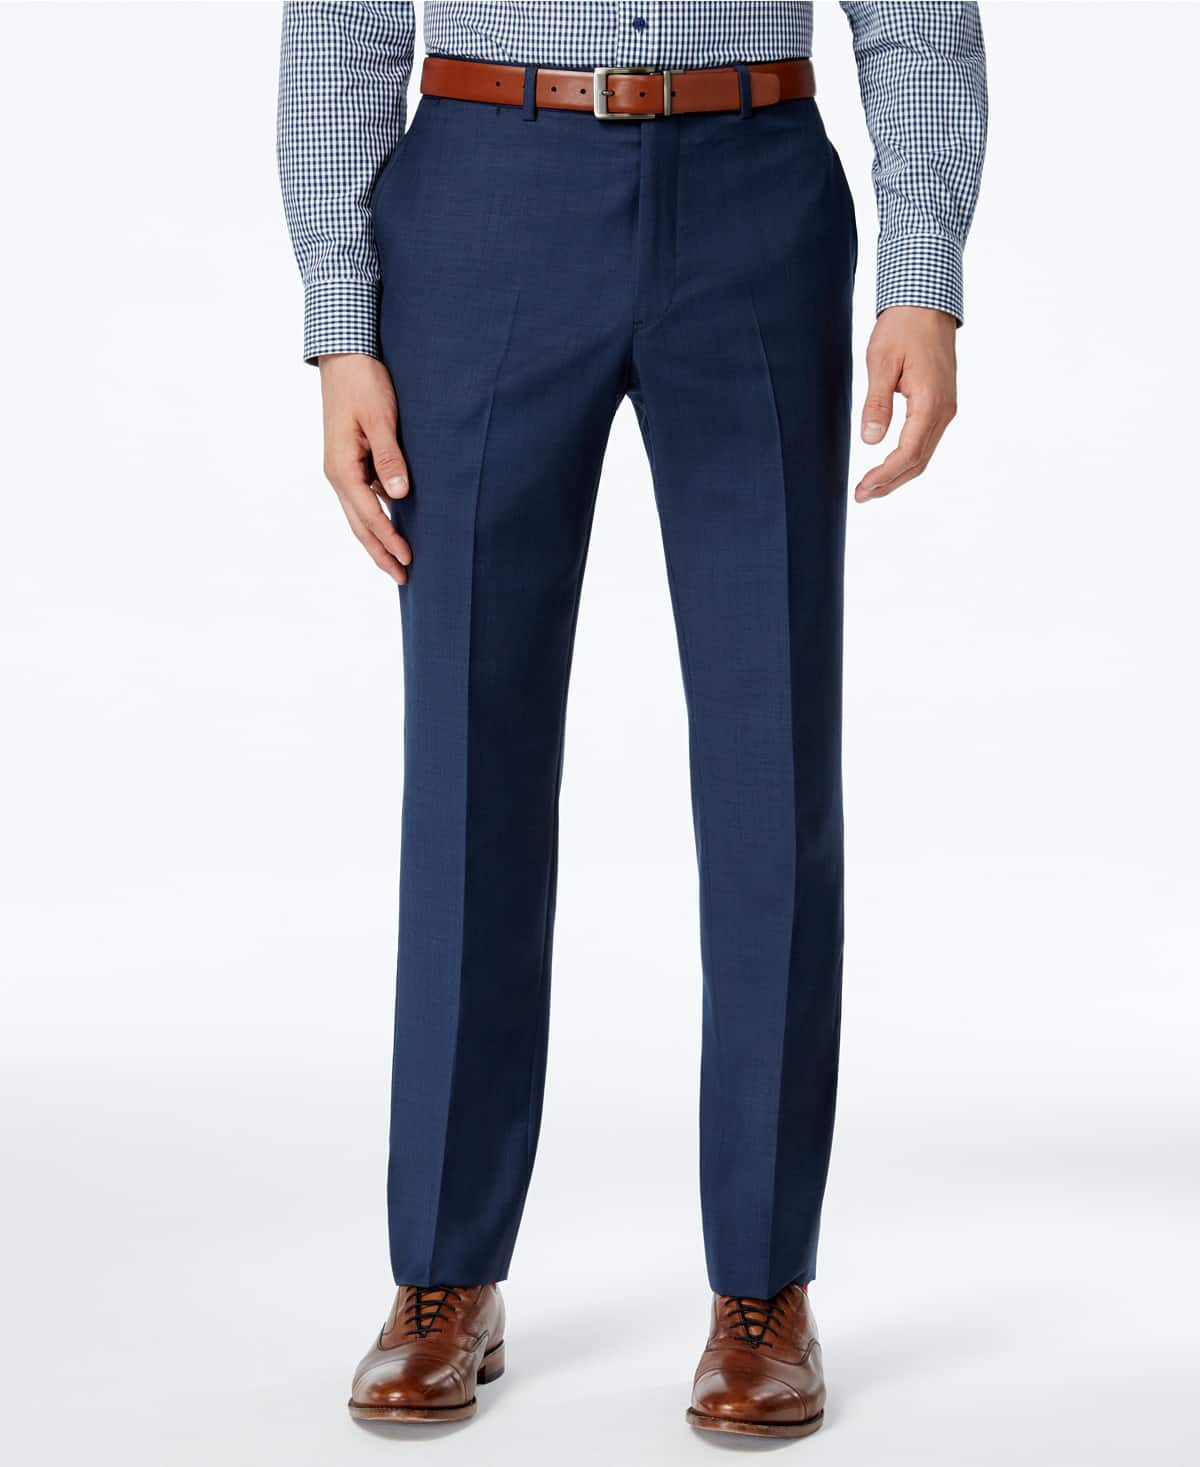 ef0a2cd8 Tommy Hilfiger Sharkskin Classic-Fit Pants (various colors ...